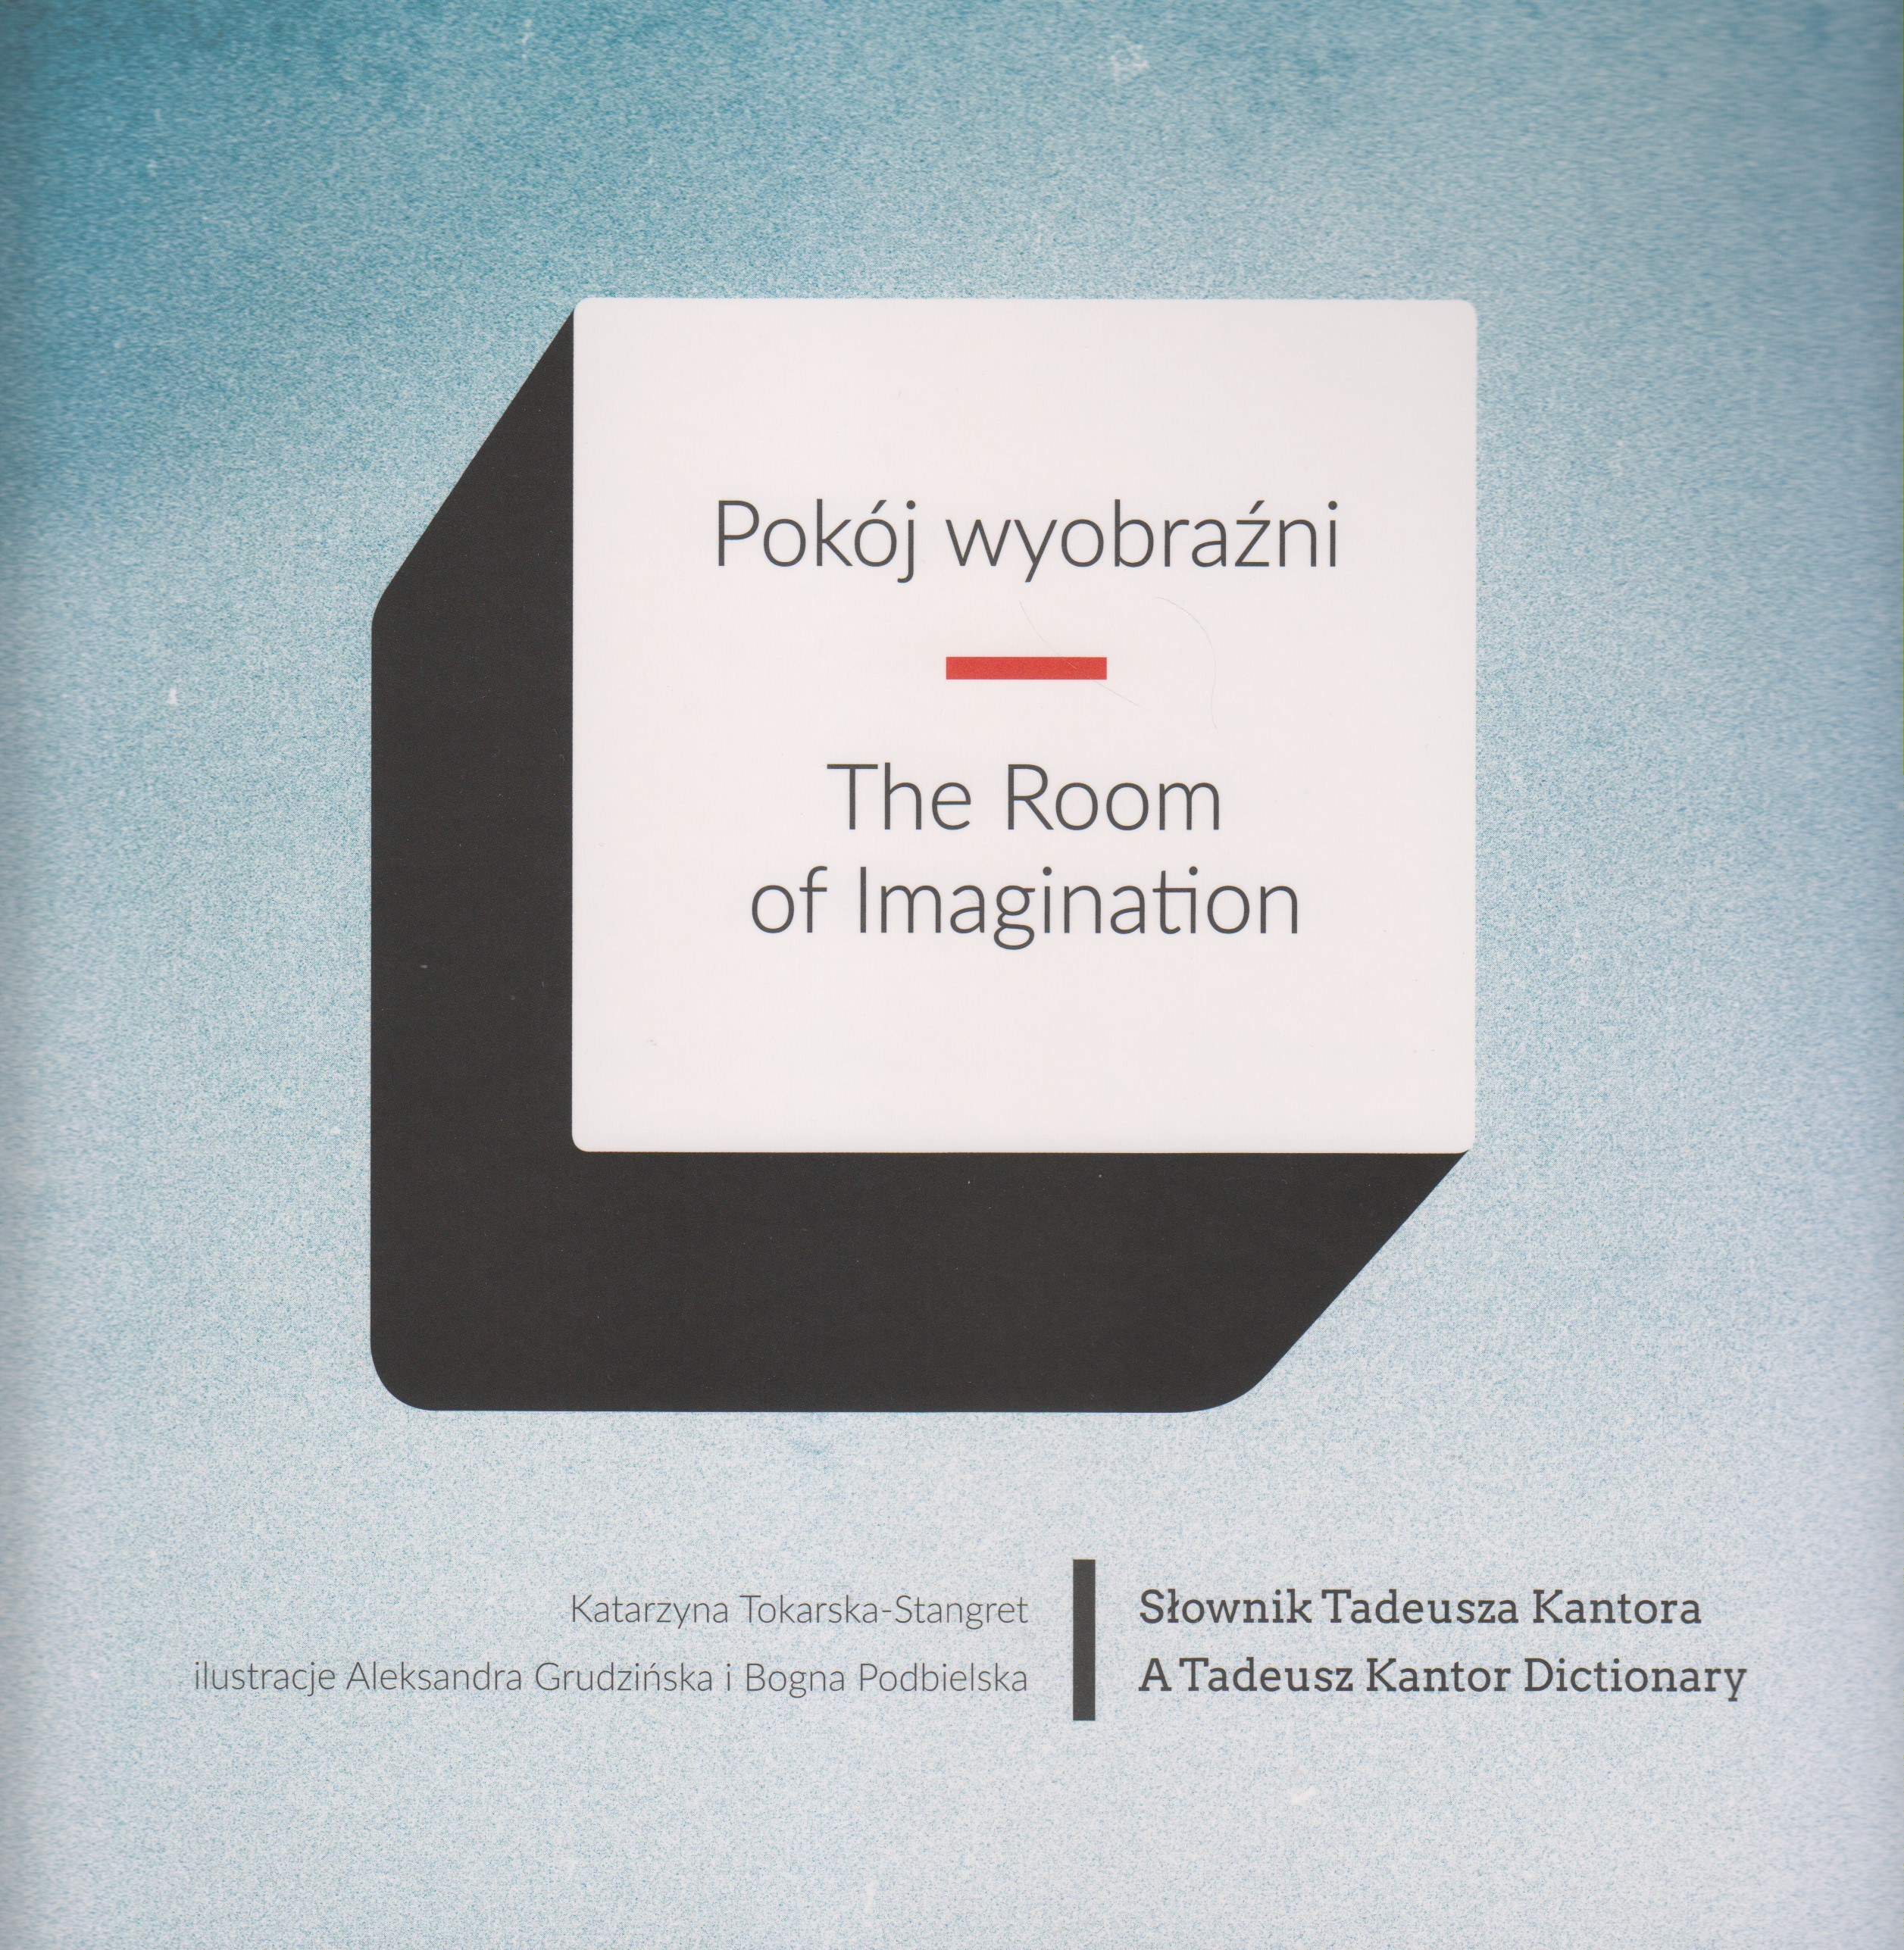 POKÓJ WYOBRAŹNI / THE ROOM OF IMAGINATION